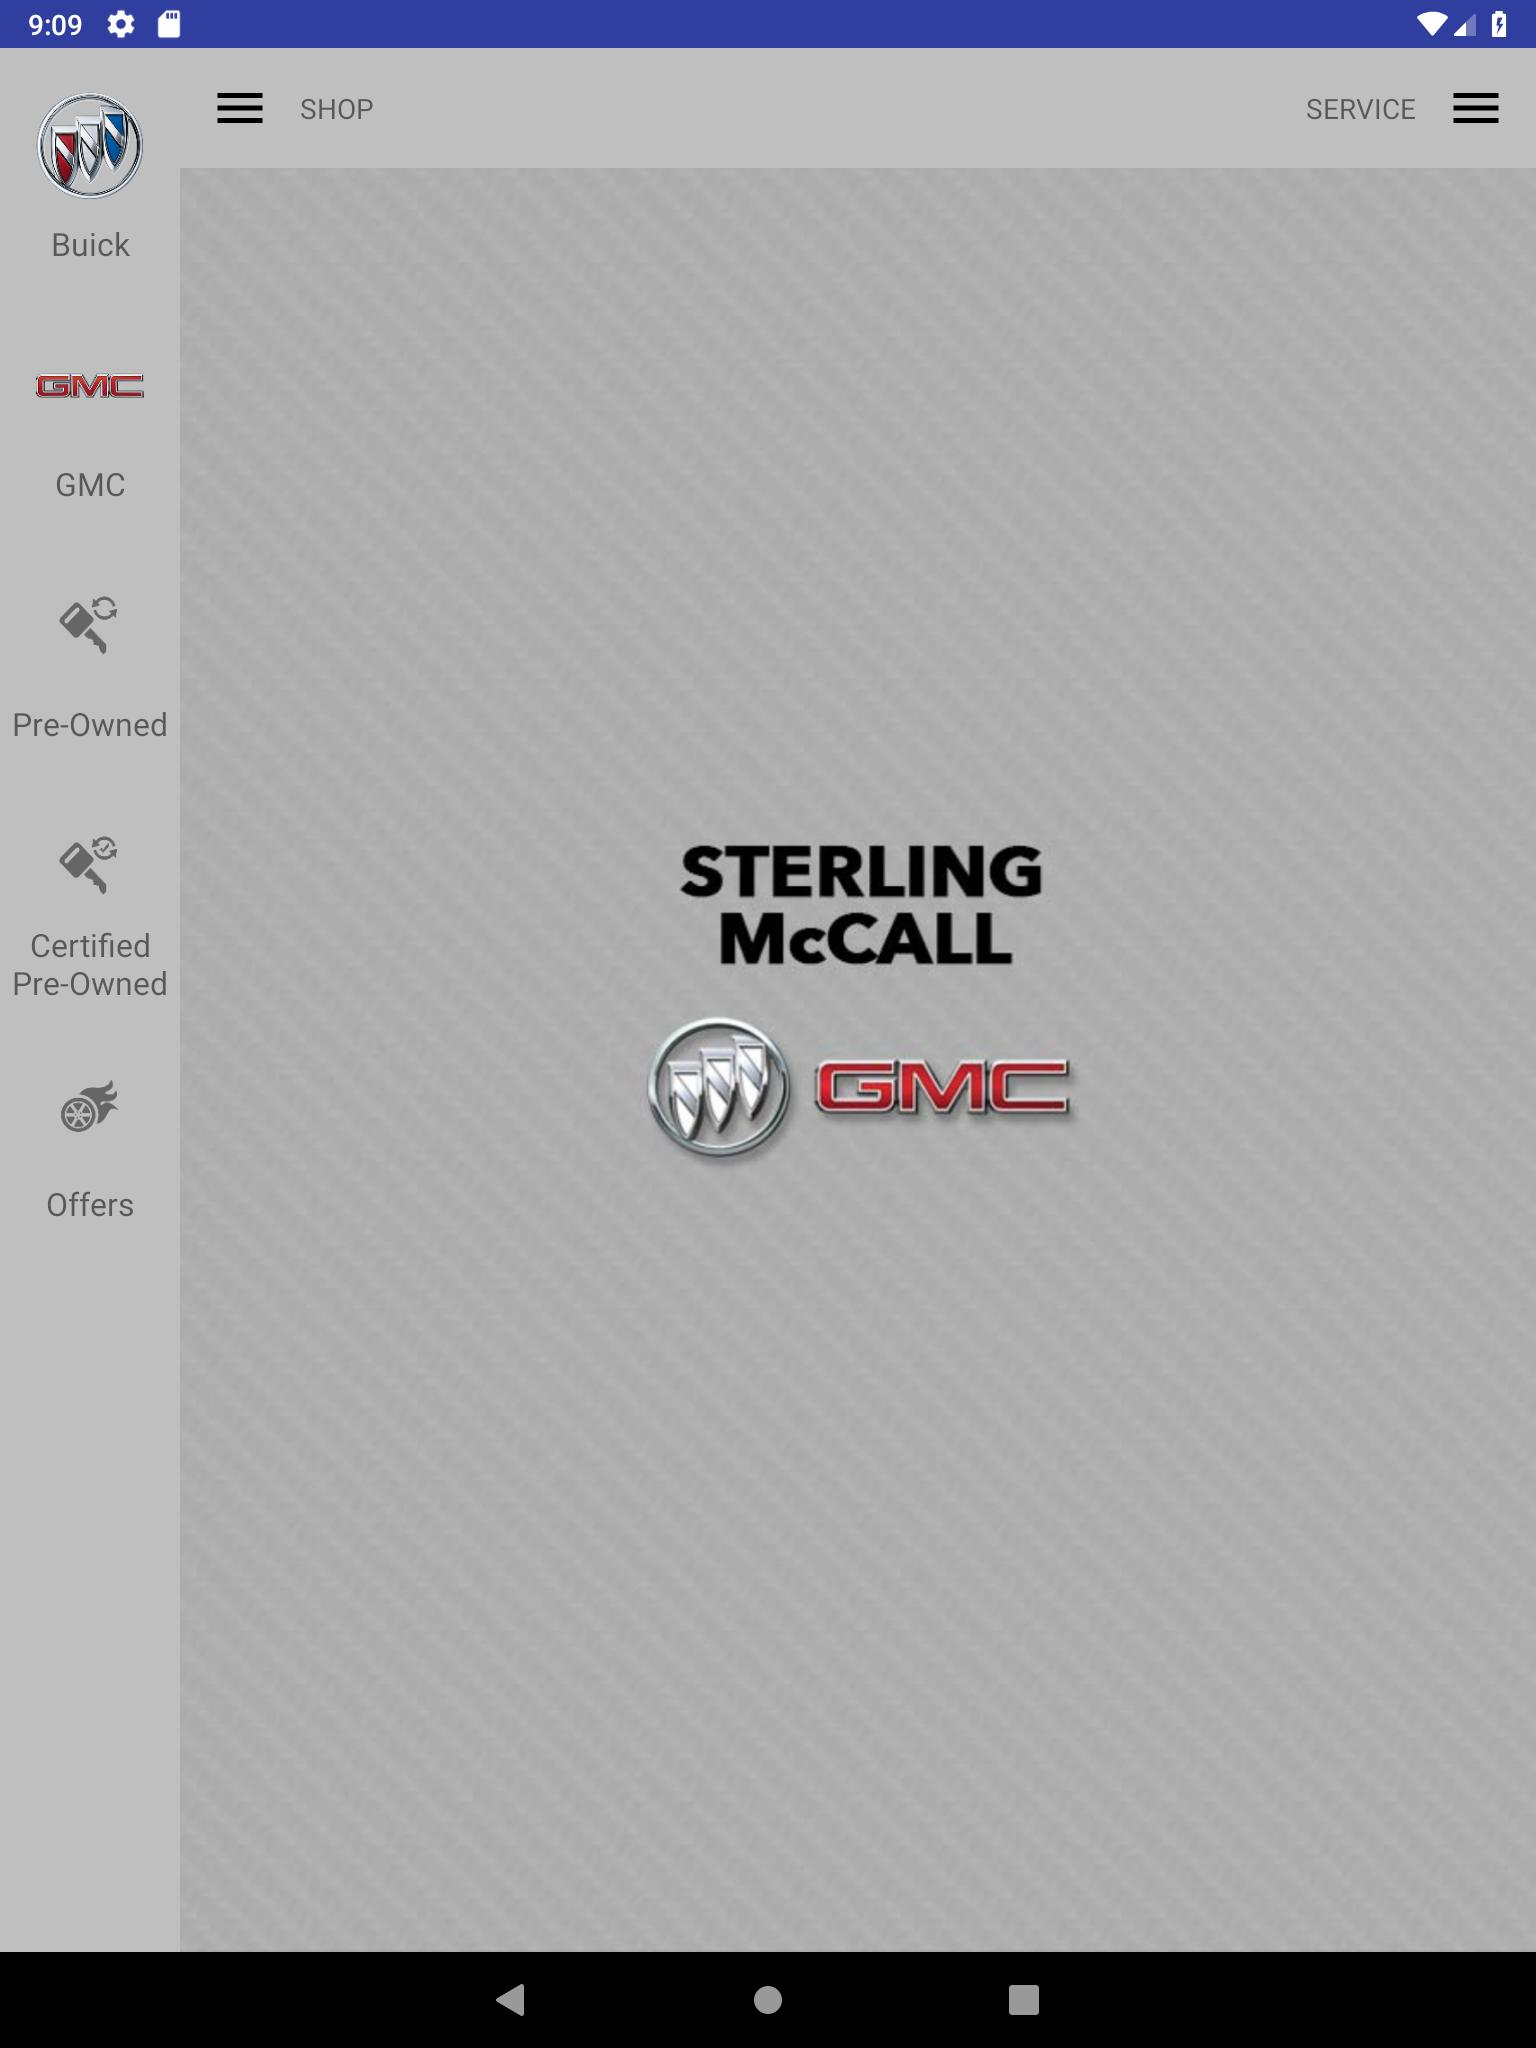 Sterling Mccall Gmc >> Sterling Mccall Buick Gmc For Android Apk Download